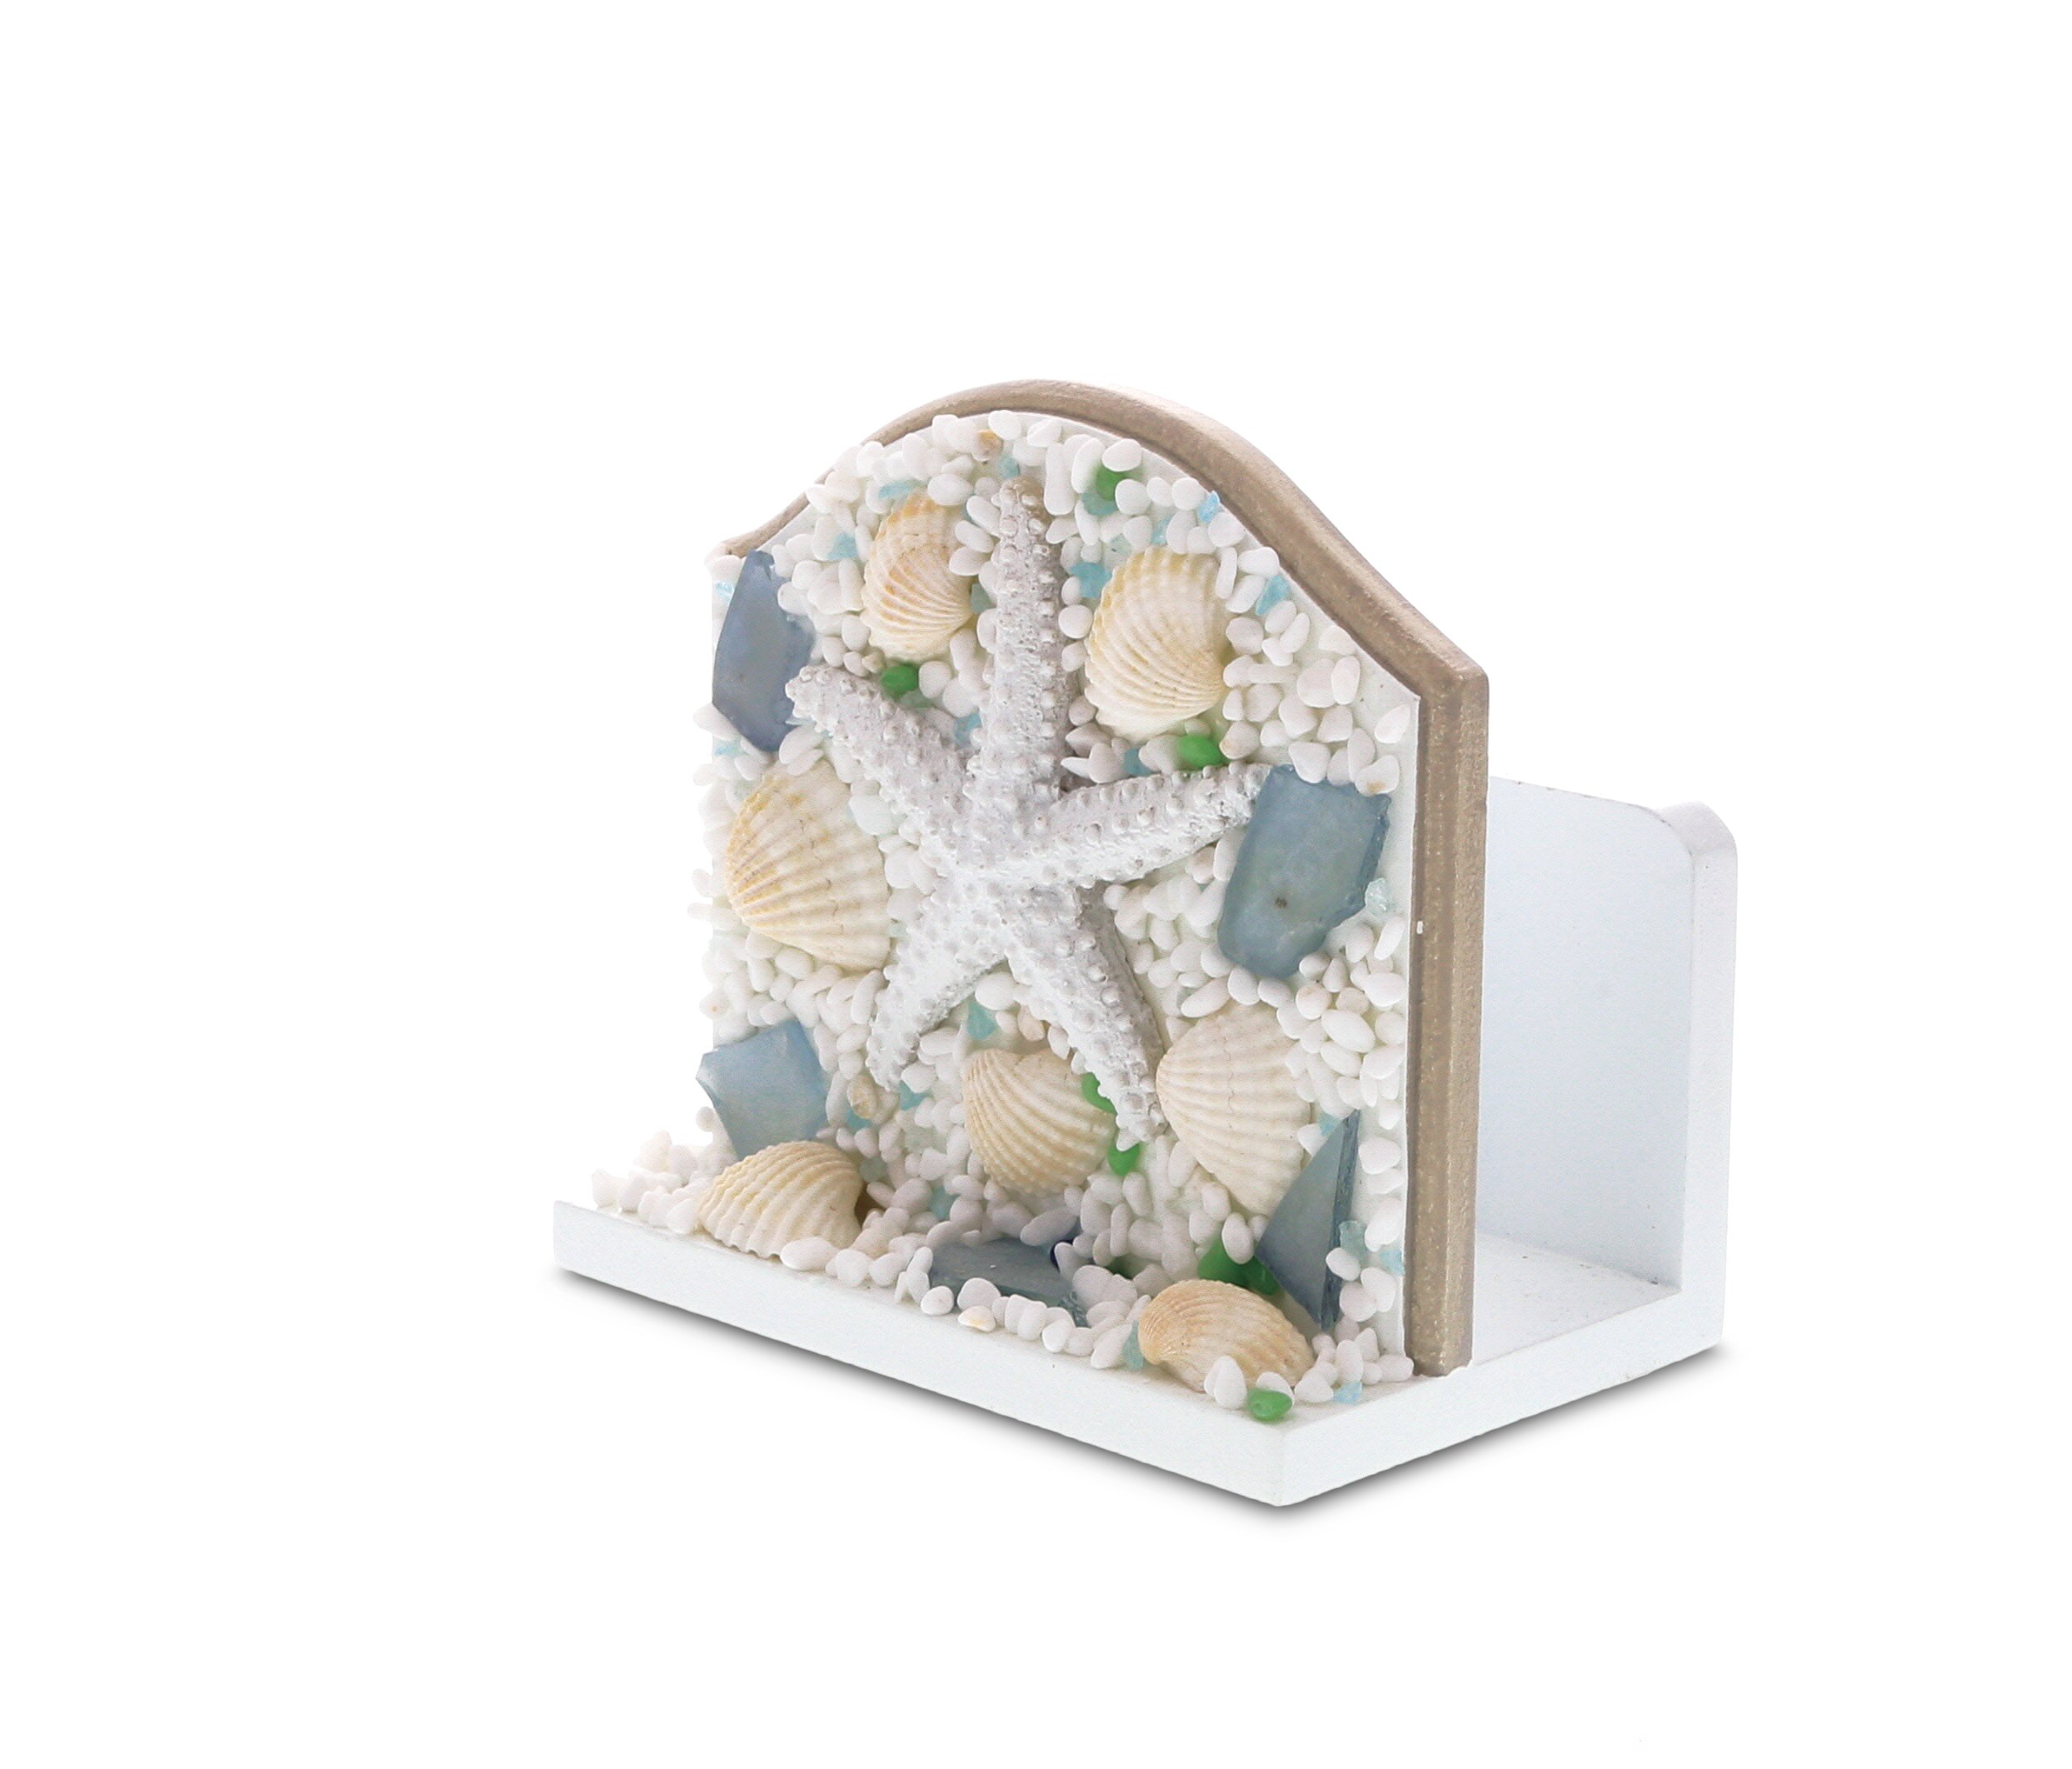 CoTa Global Oceanic Wooden Napkin Wipes or Paper Towel Holder |Beach Starfish Shells and Pebbles Nautical Decor Tableware Accent | 4.8 x 3.1 x 4.6 inches- Item #9174 by CoTa Global